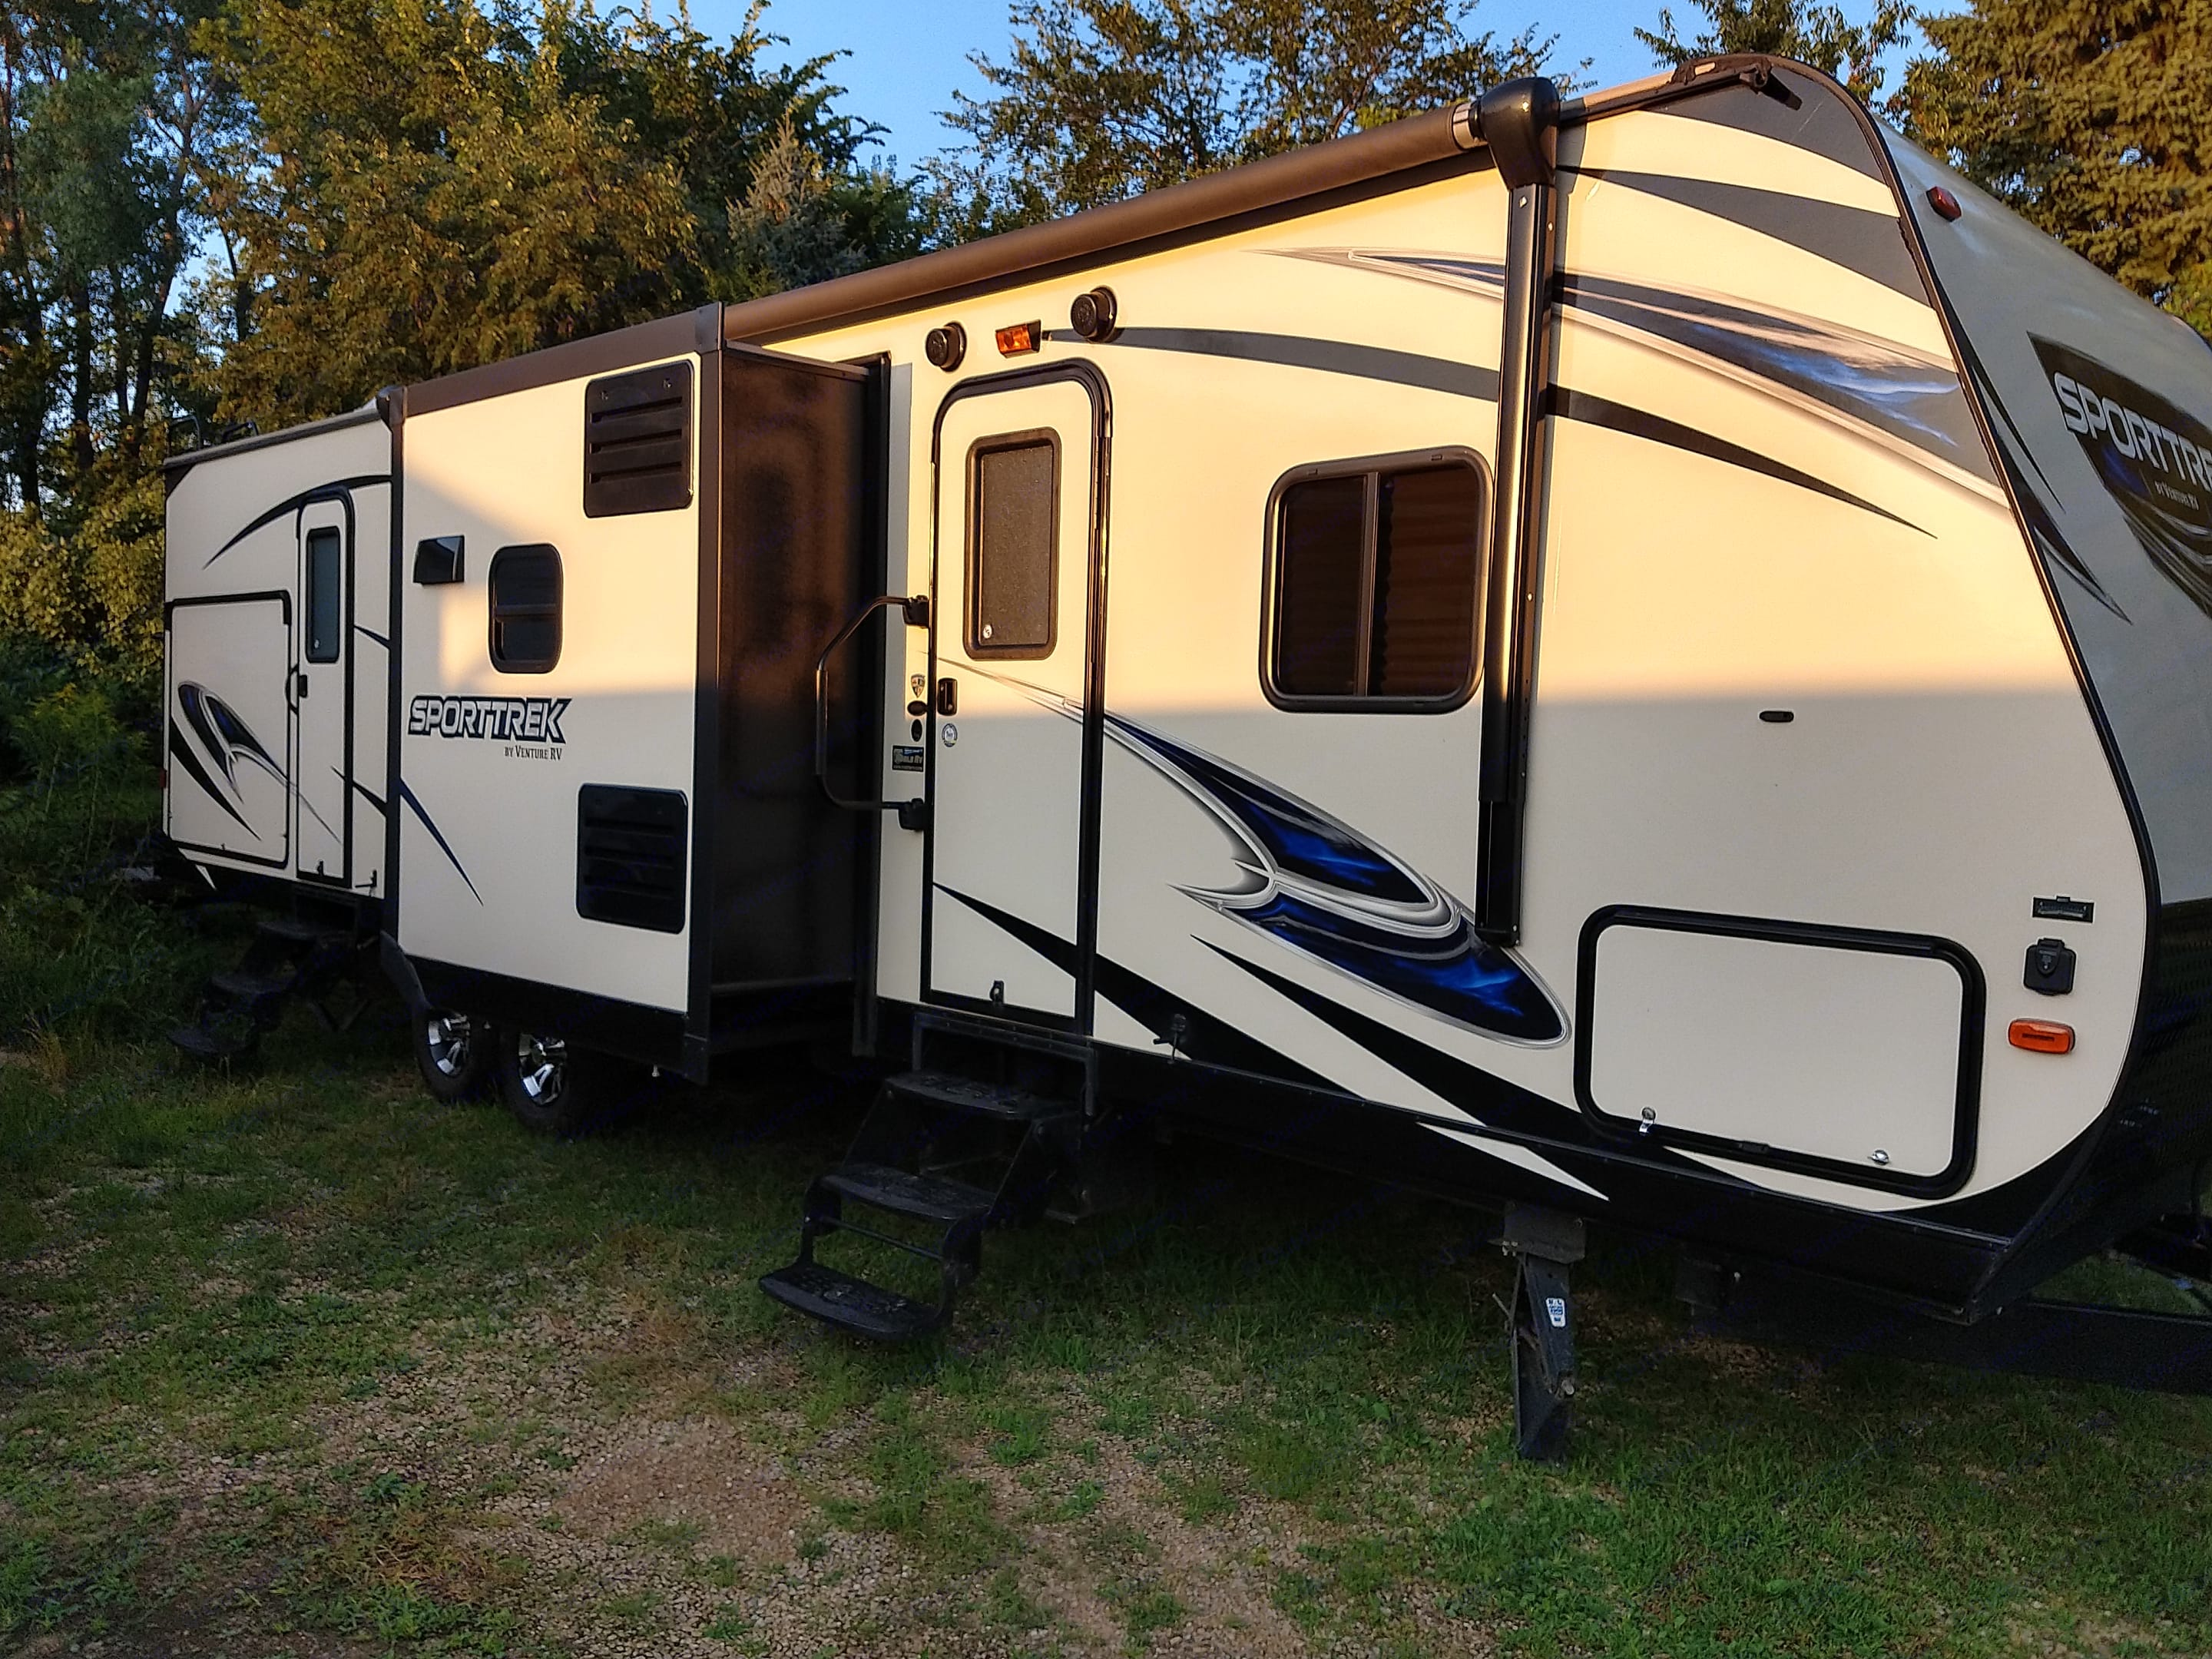 Right side of Camper with the kitchen slide out. The out door kitchen door is visible in the rear along with the rear door for the outside bathroom entrance. Front door is the main. Entrance. Power awning with LED lights.. Venture Rv Sporttrek 2017